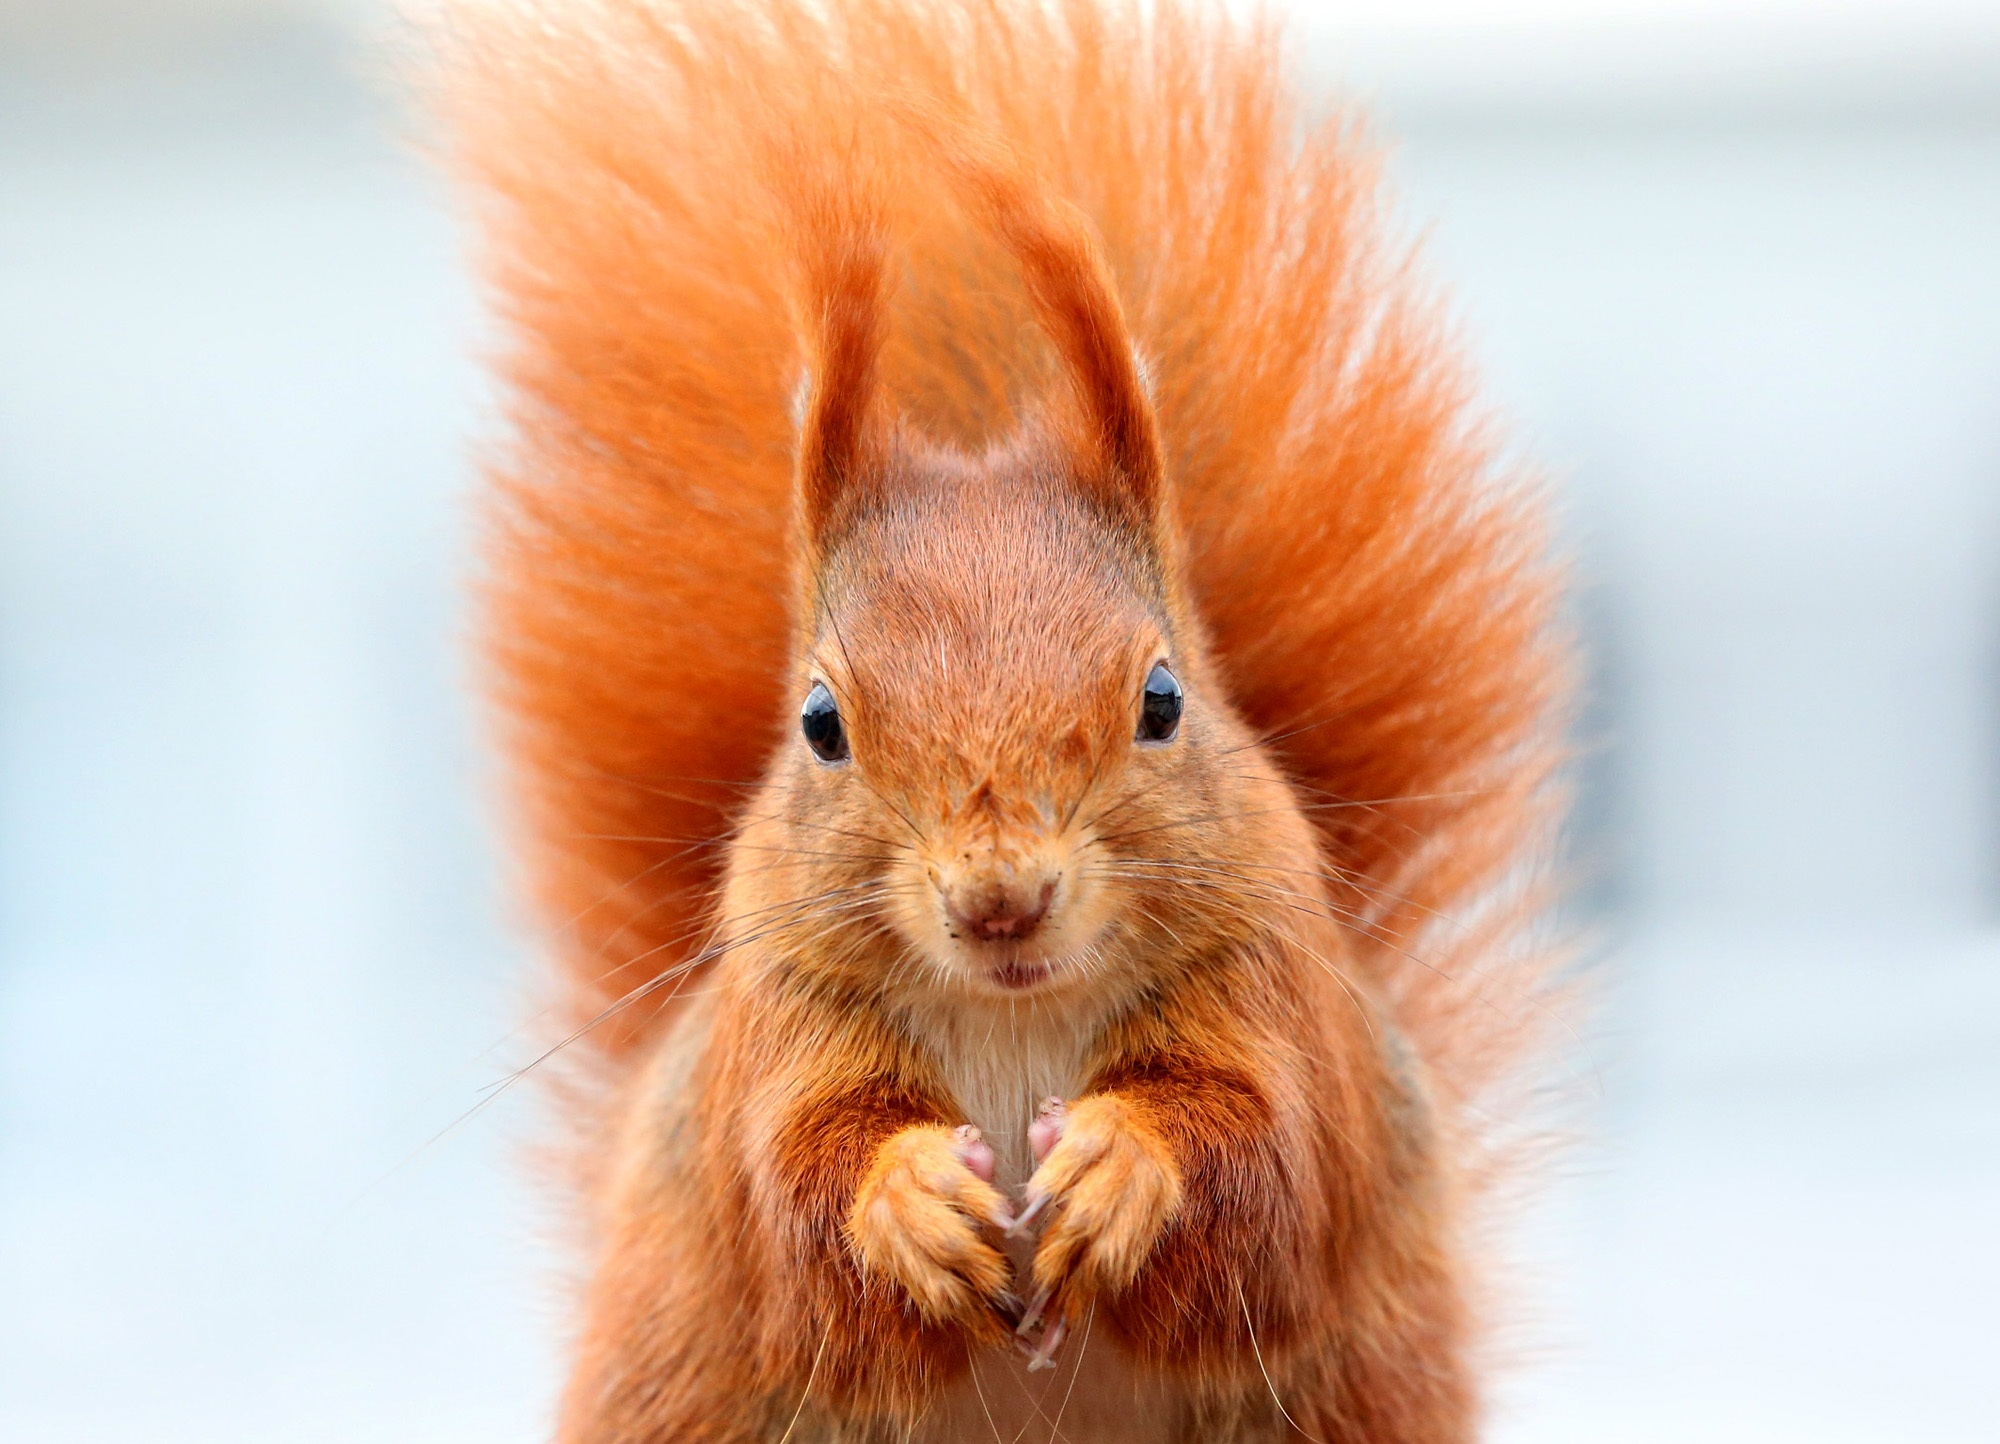 84723 Screensavers and Wallpapers Squirrel for phone. Download Animals, Squirrel, Muzzle, Animal, Fluffy Tail pictures for free